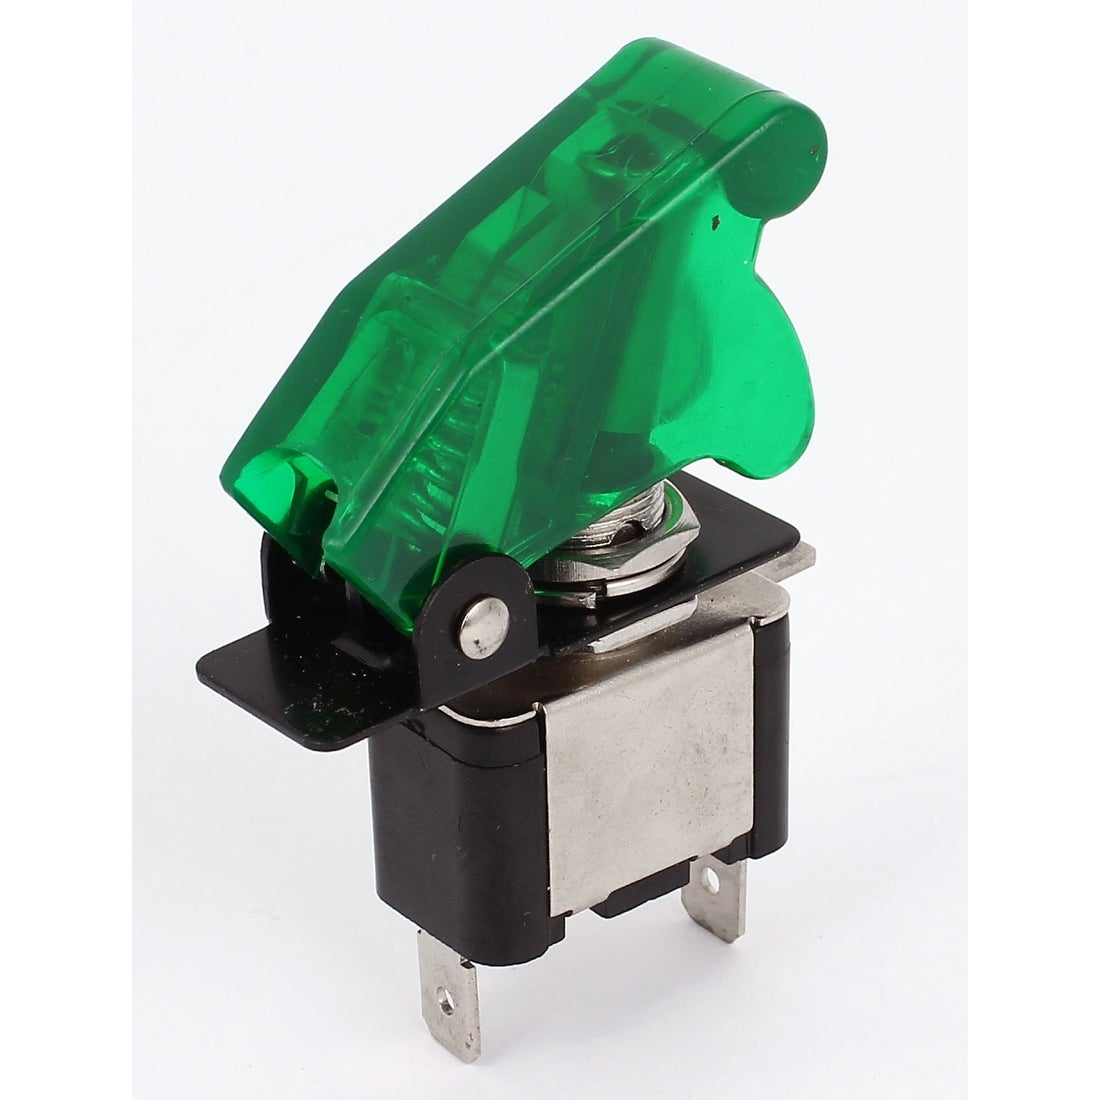 Unique Bargains Green Flip Cover Red Led Lighted Toggle Switch 12v Rocker Spst All Electronics Corp 20a On Off Car Truck Free Shipping Orders Over 45 Overstock 24471650